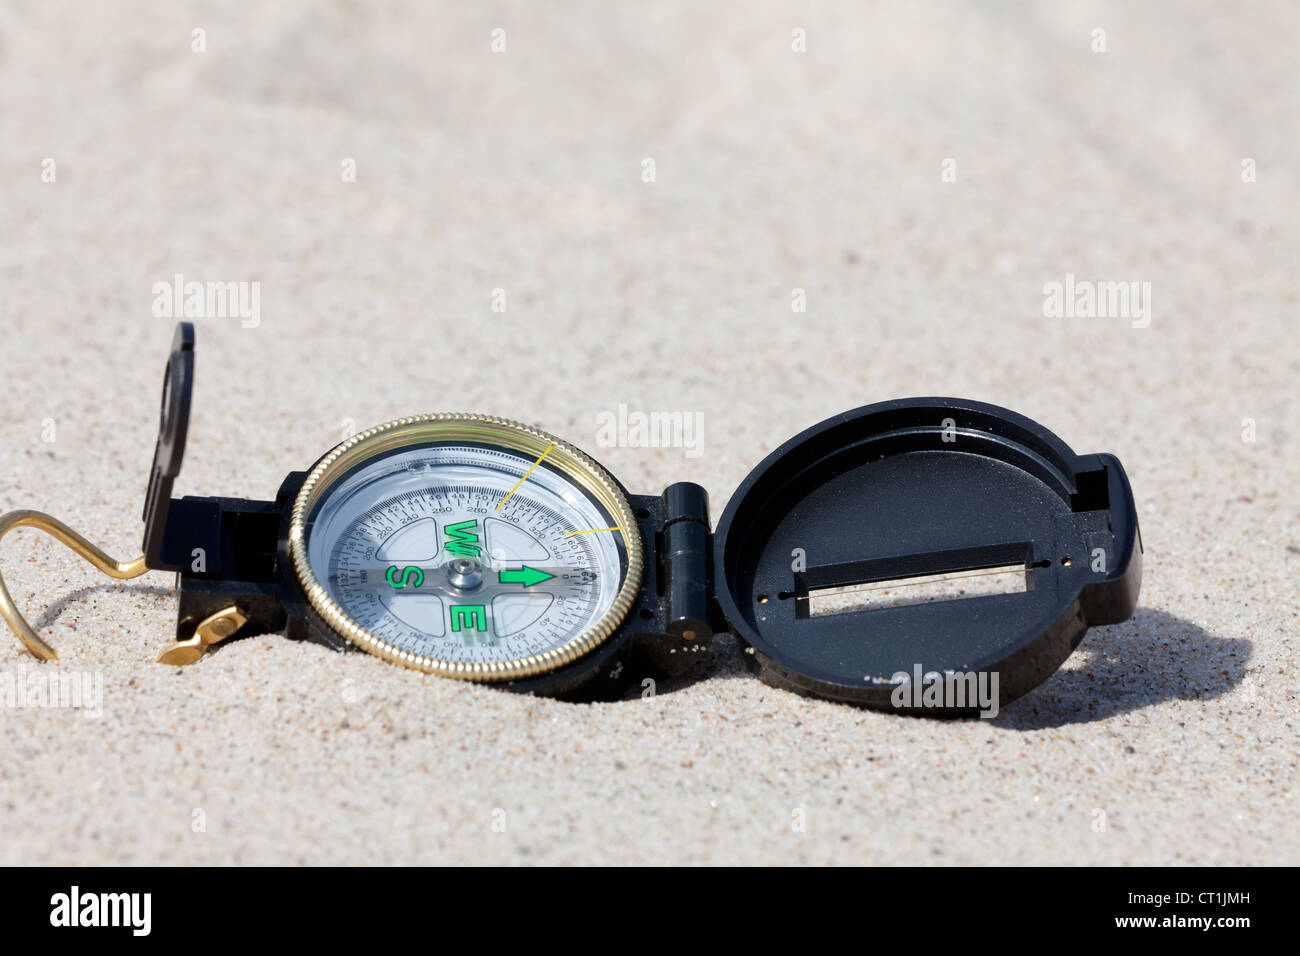 Compass in the hot desert - Stock Image